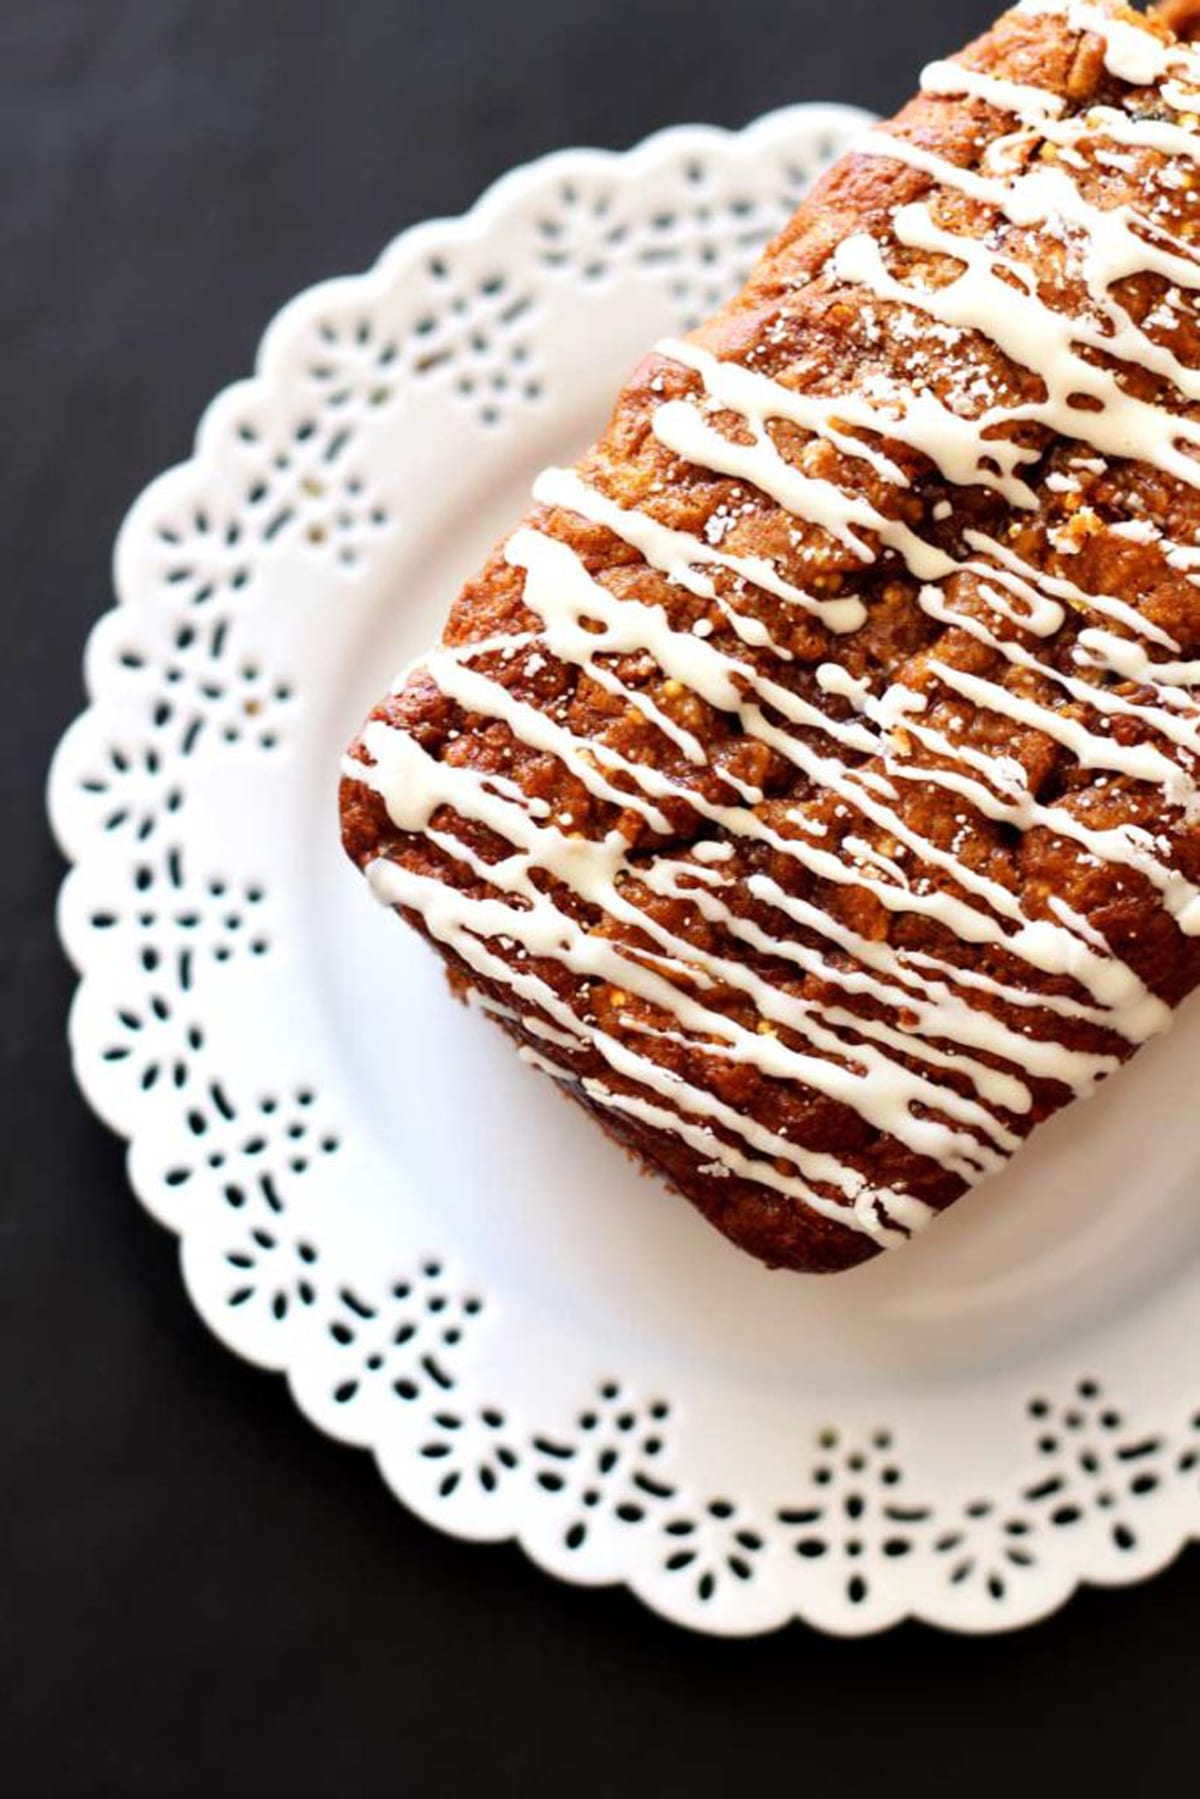 Loaf of zucchini bread glazed with frosting on a plate.